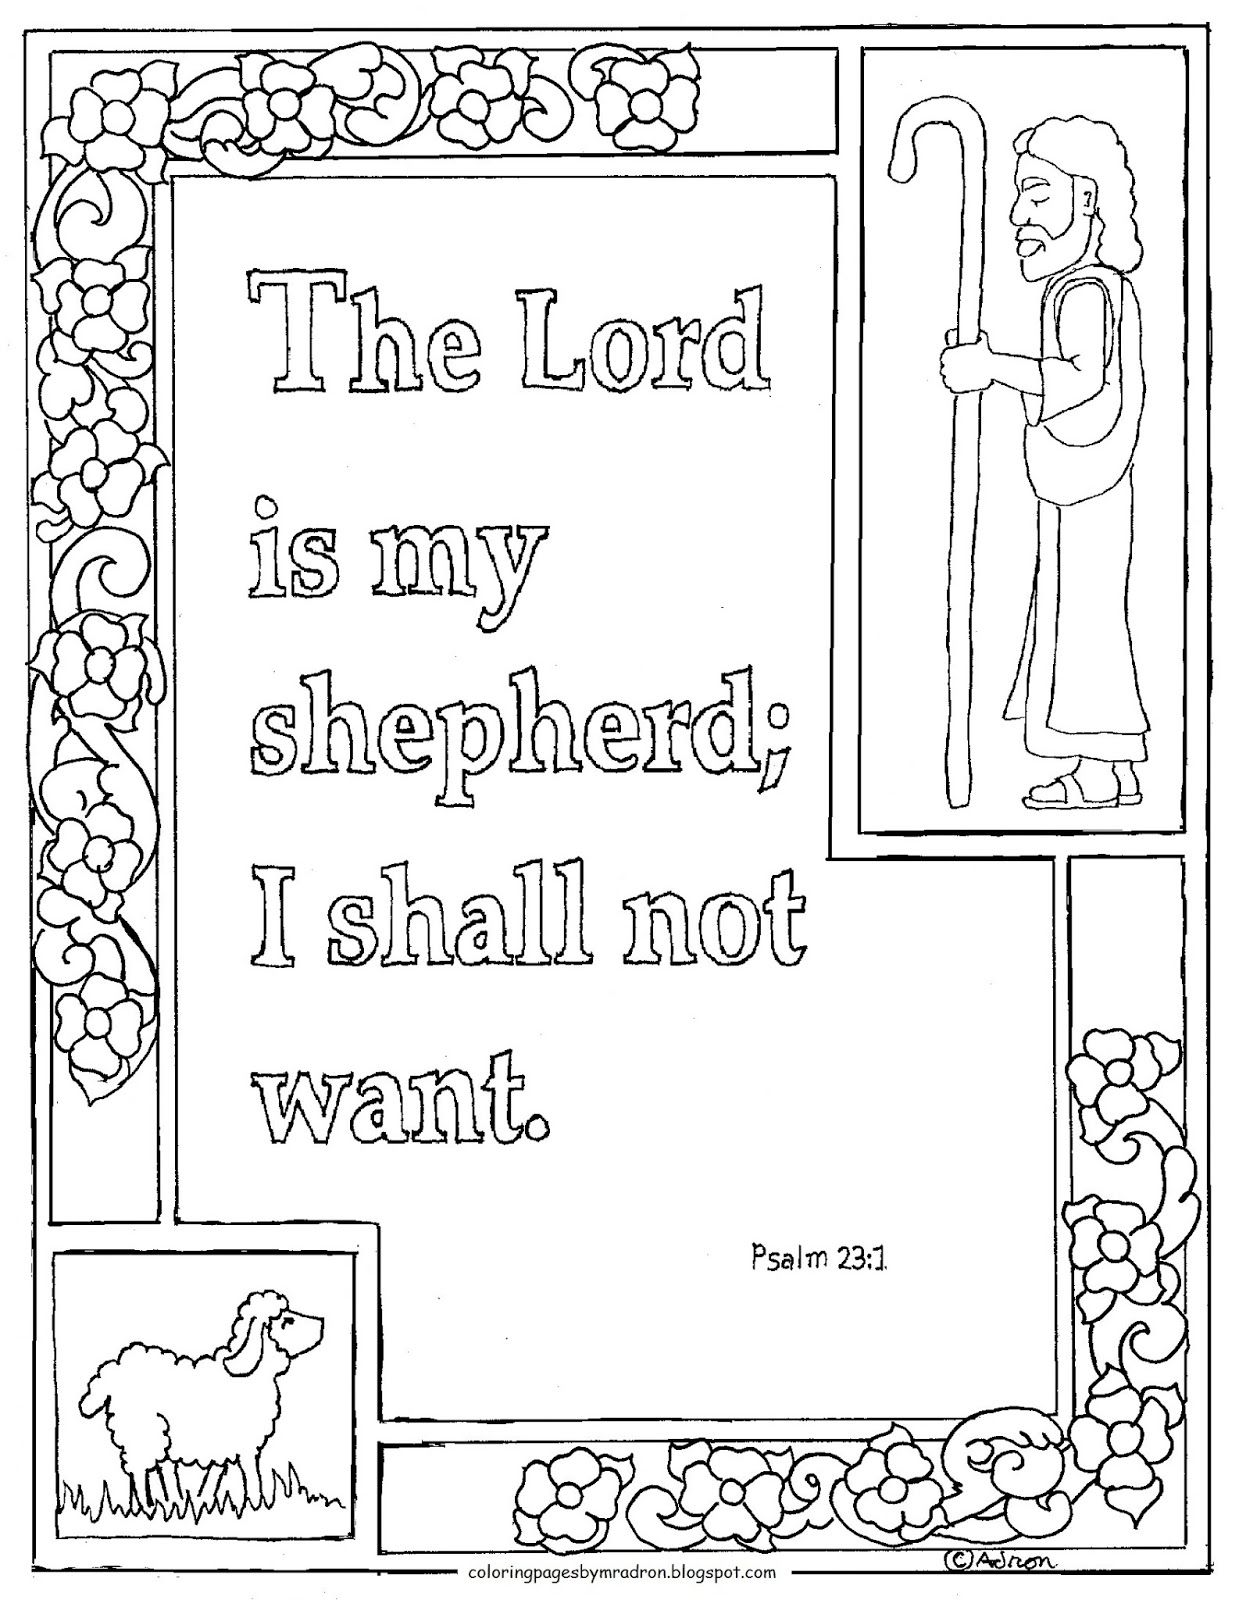 This free Psalm 23:1 printable coloring page is not just for kids ...